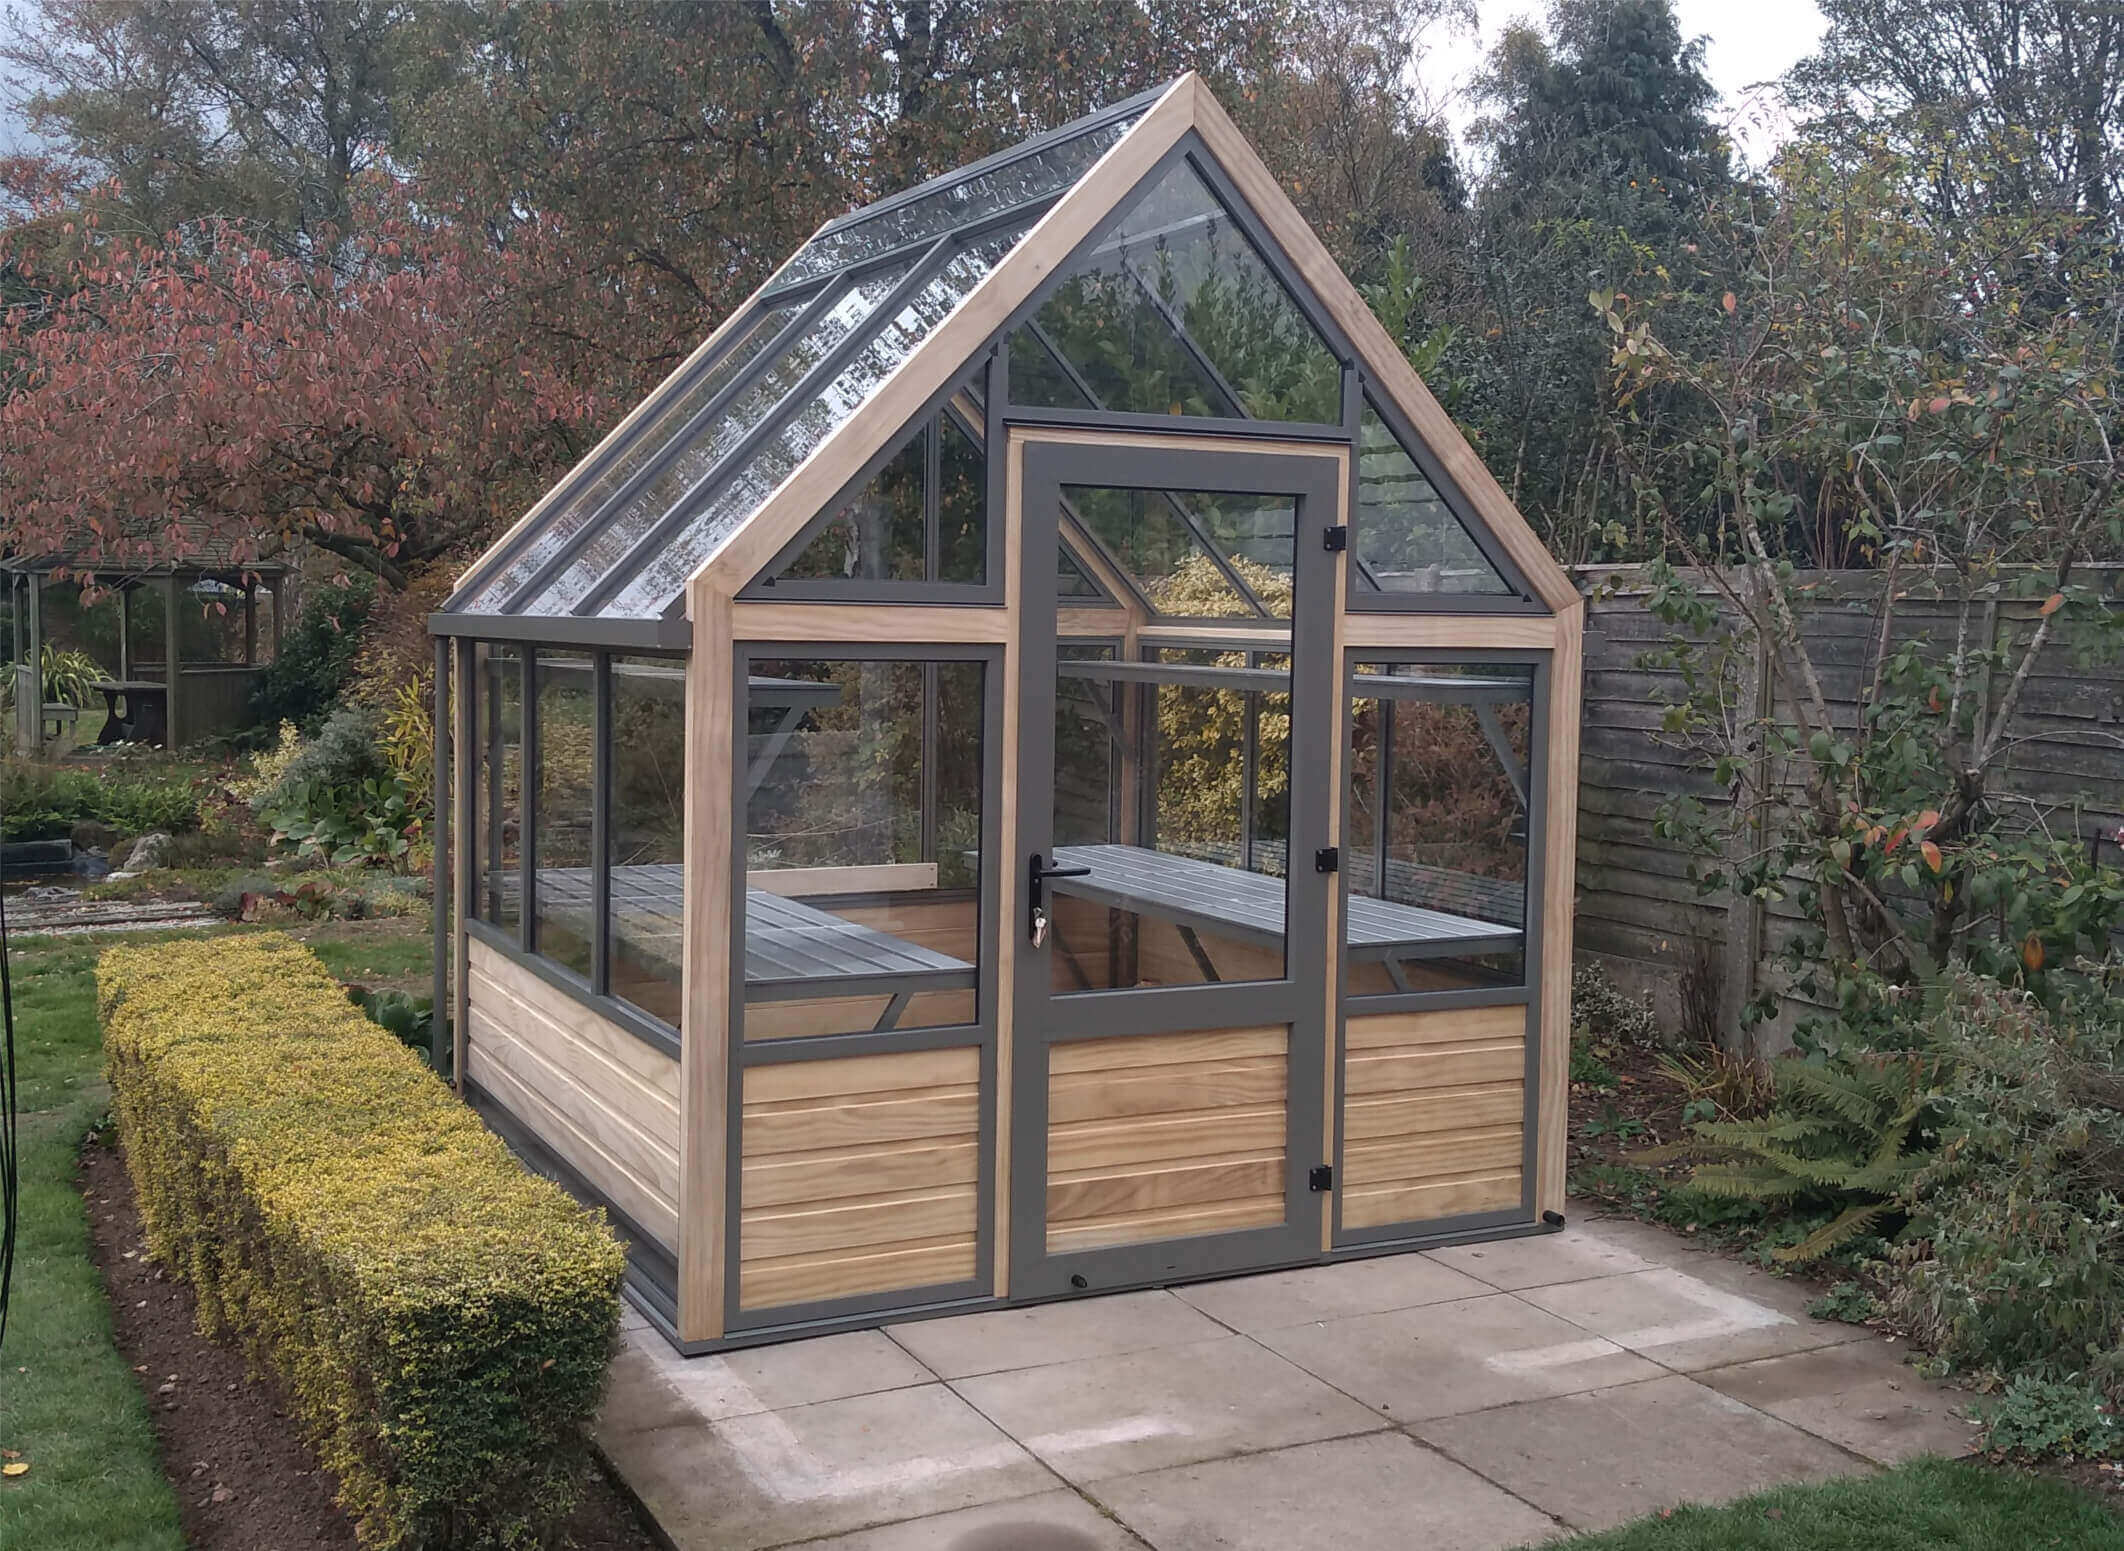 Eight by Eight foot wooden Greenhouse